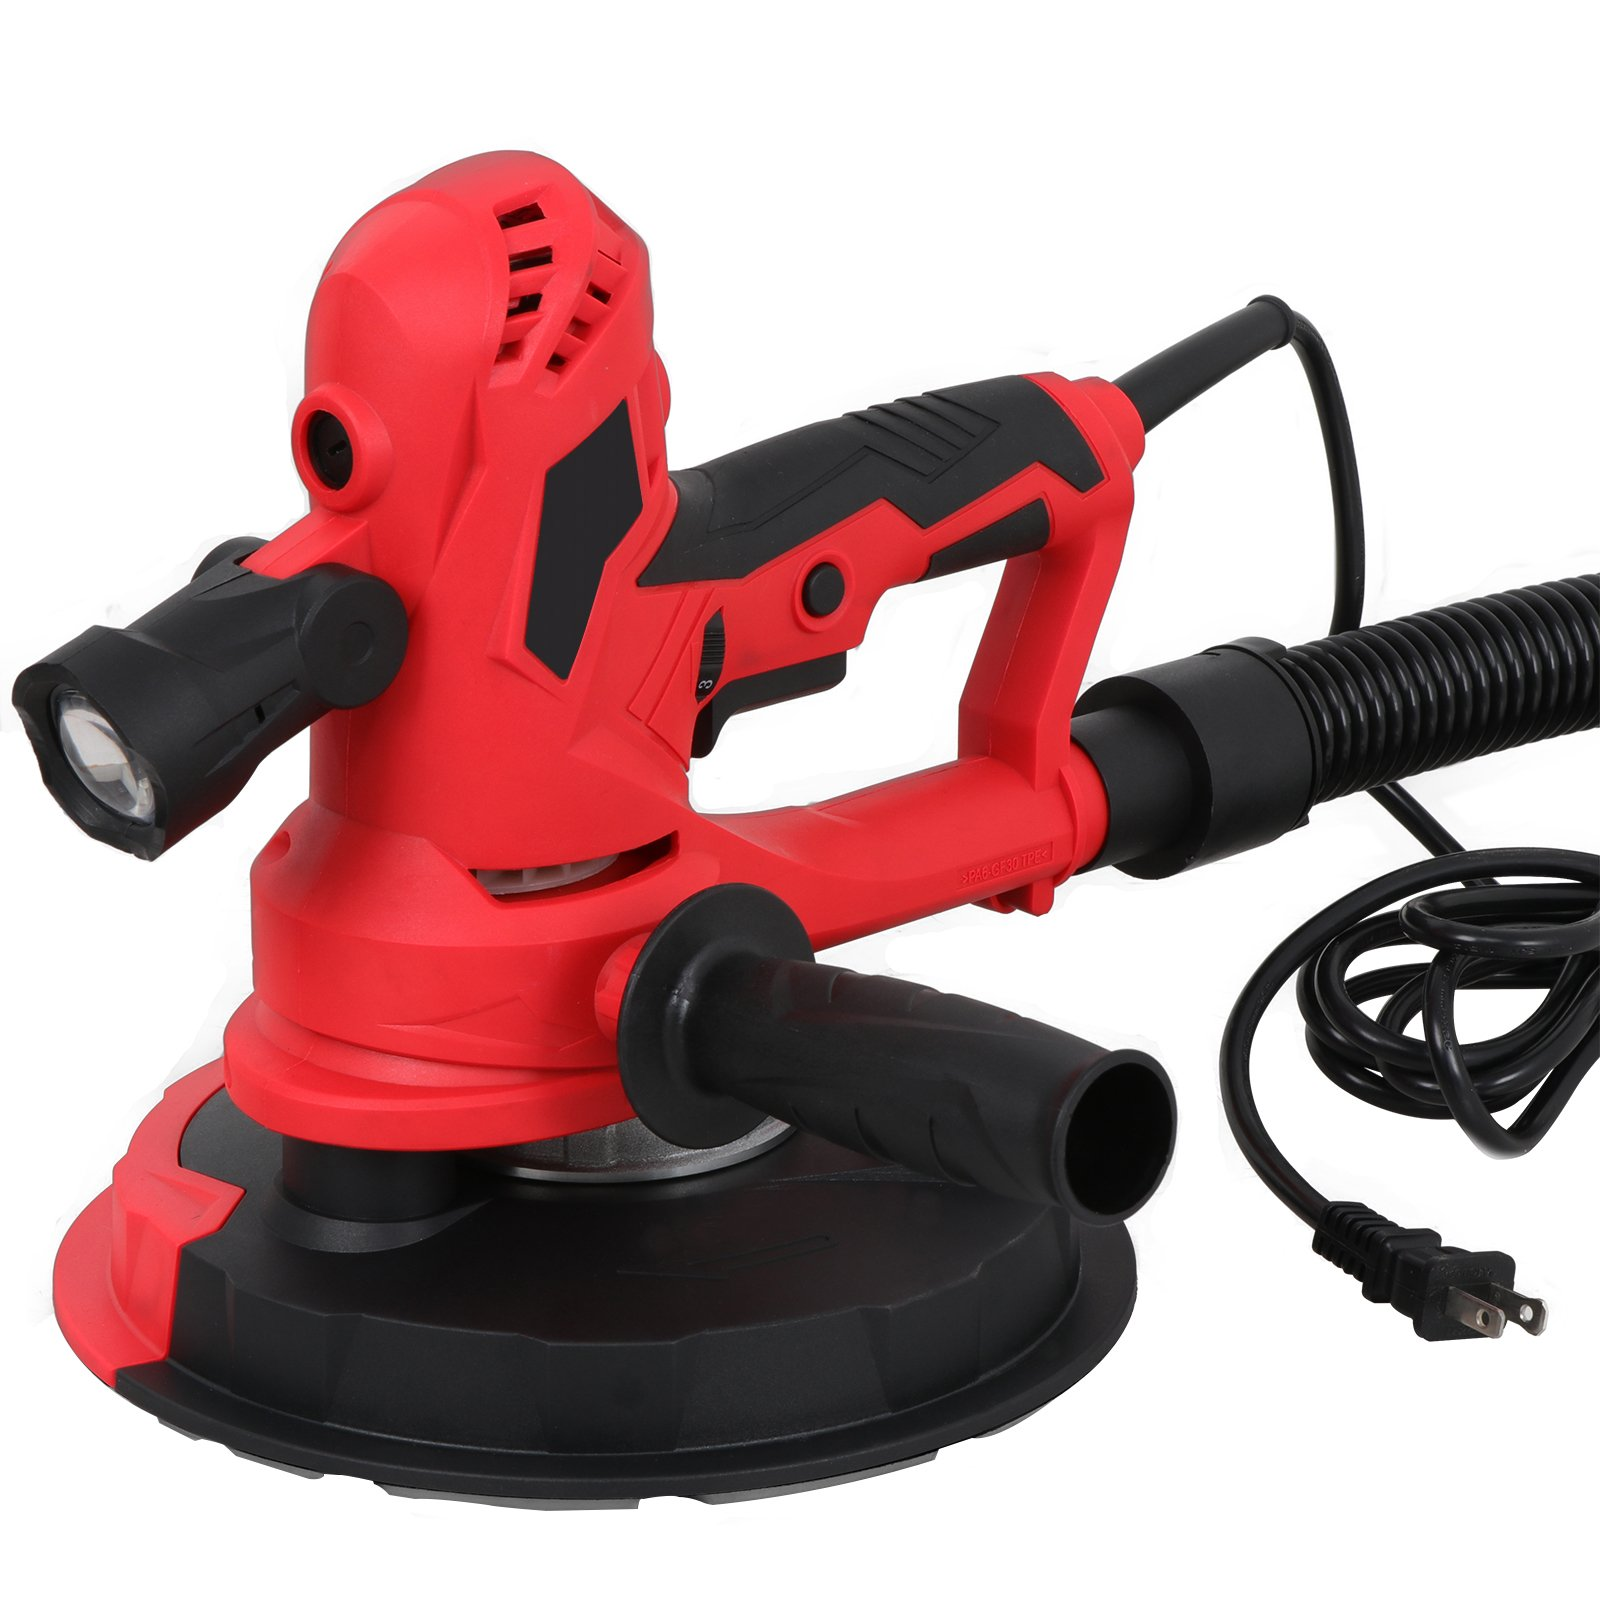 F2C 750W Hand Held Variable Speeds Vacuum Drywall Disc Sander W/LED Light, 6 Discs,2 Carbon Brushes & Carrying Dust Bag, 800RMP to 2,500RMP